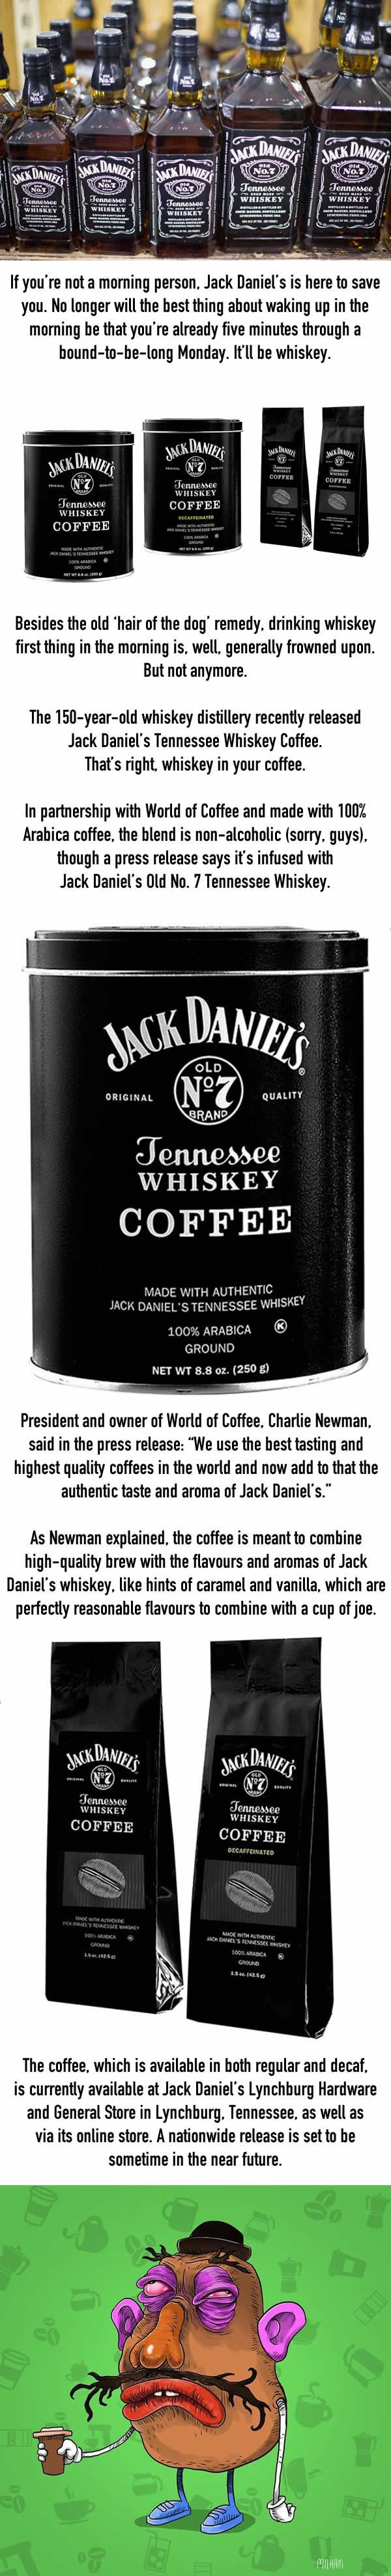 You can now enjoy whiskey in the morning with jack daniel's coffee